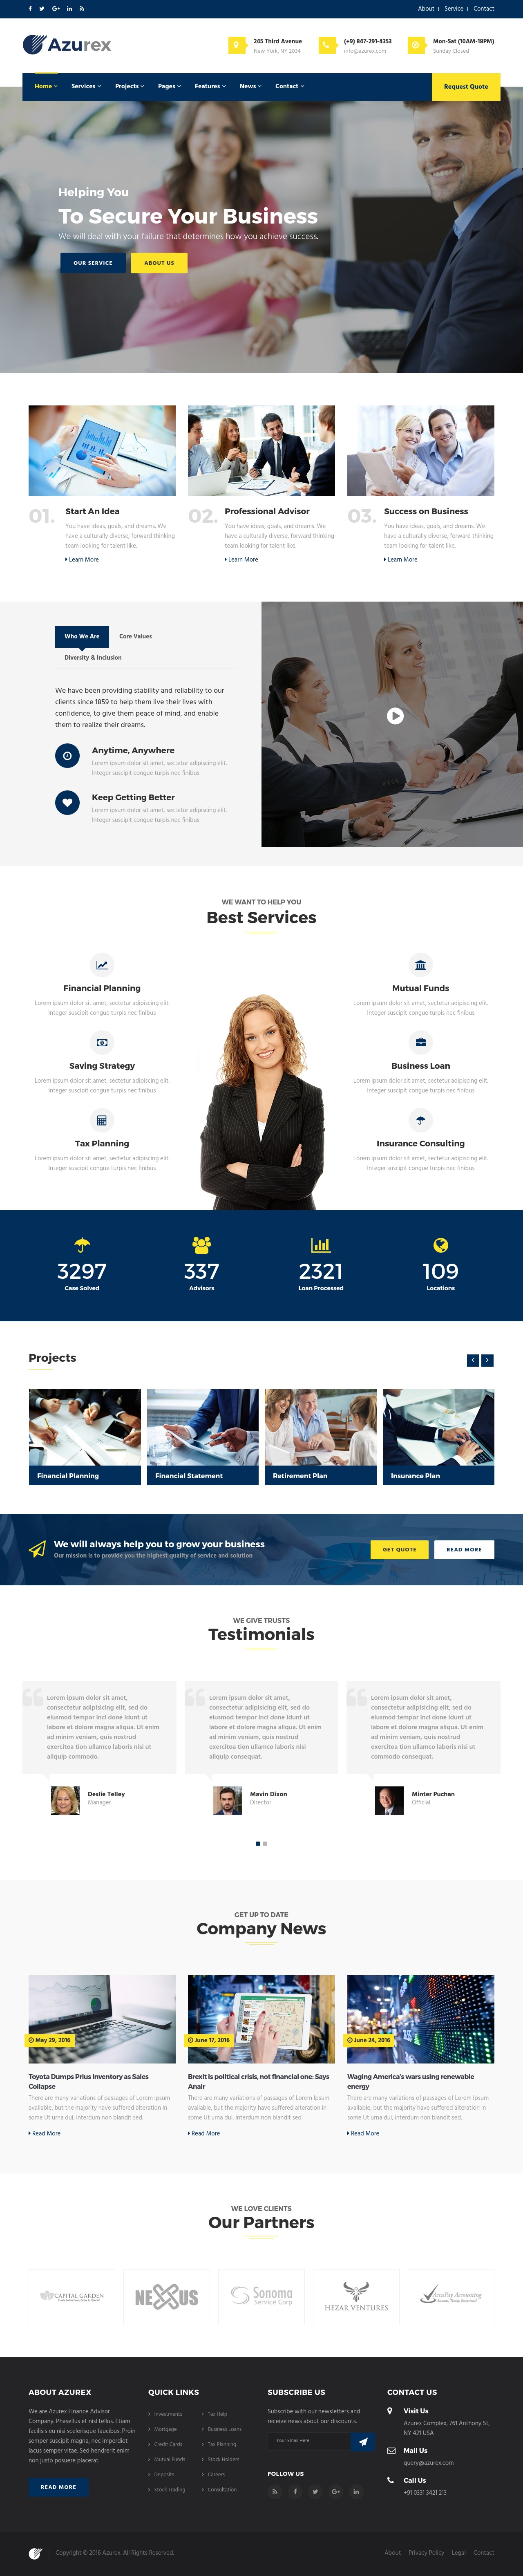 Azurex – Finance and Corporate Business HTML5 Template